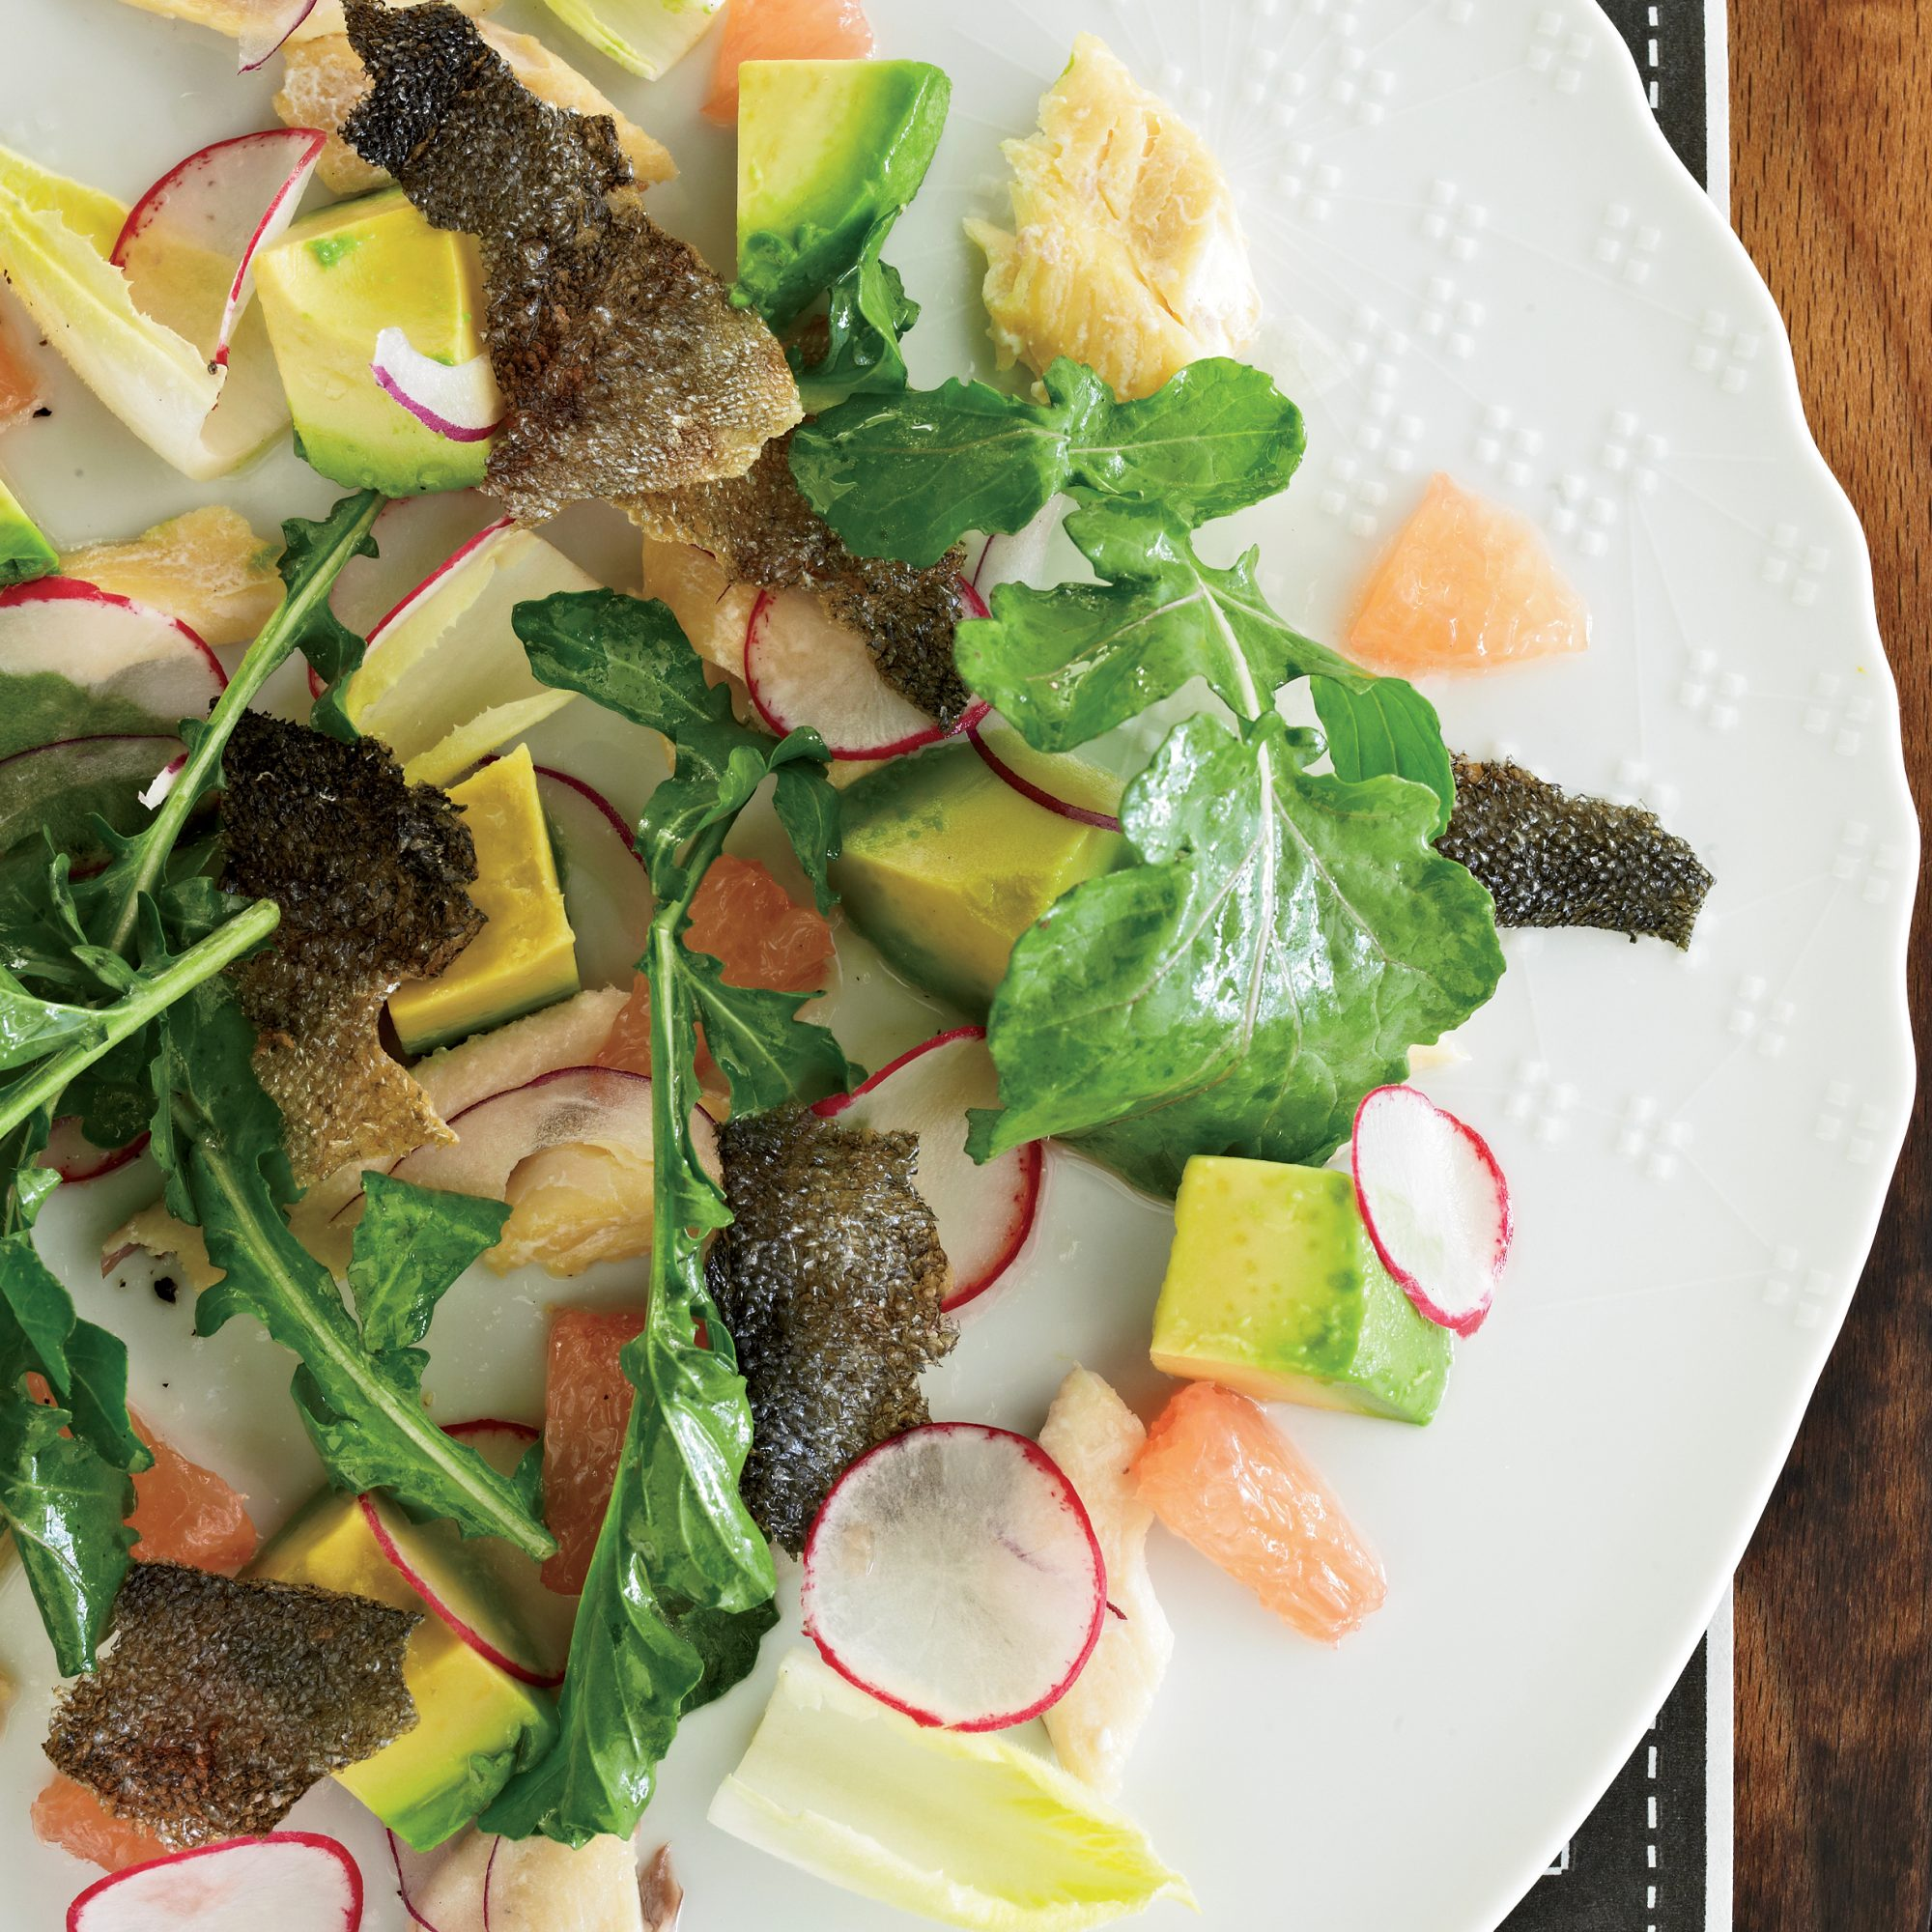 201001-r-smoked-trout-salad.jpg